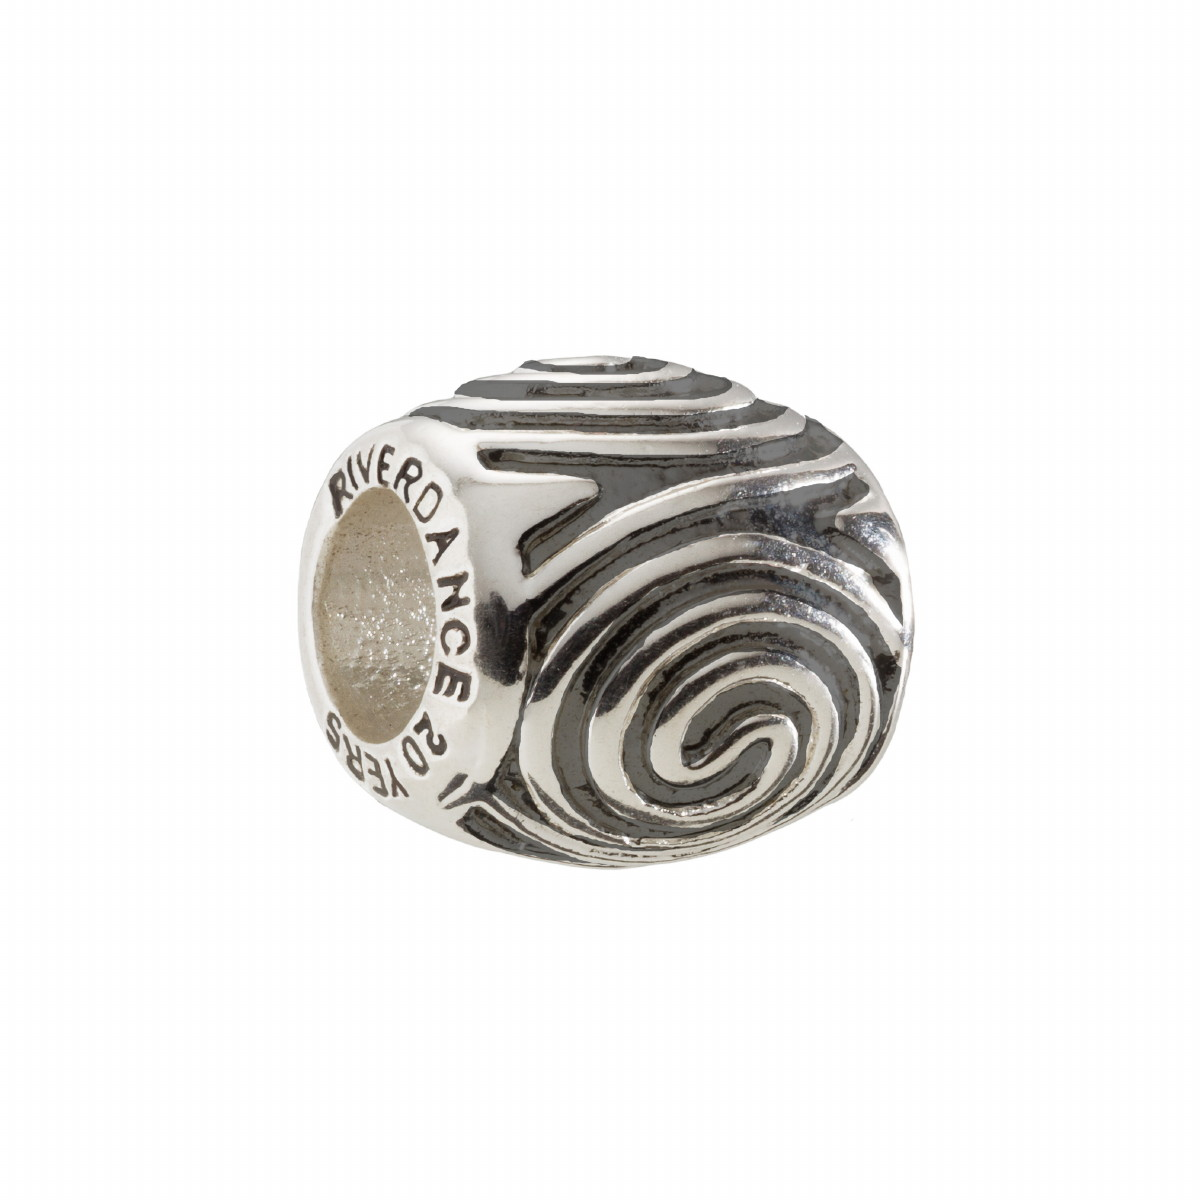 Official Riverdance20 Celtic Spirals Charm Bead